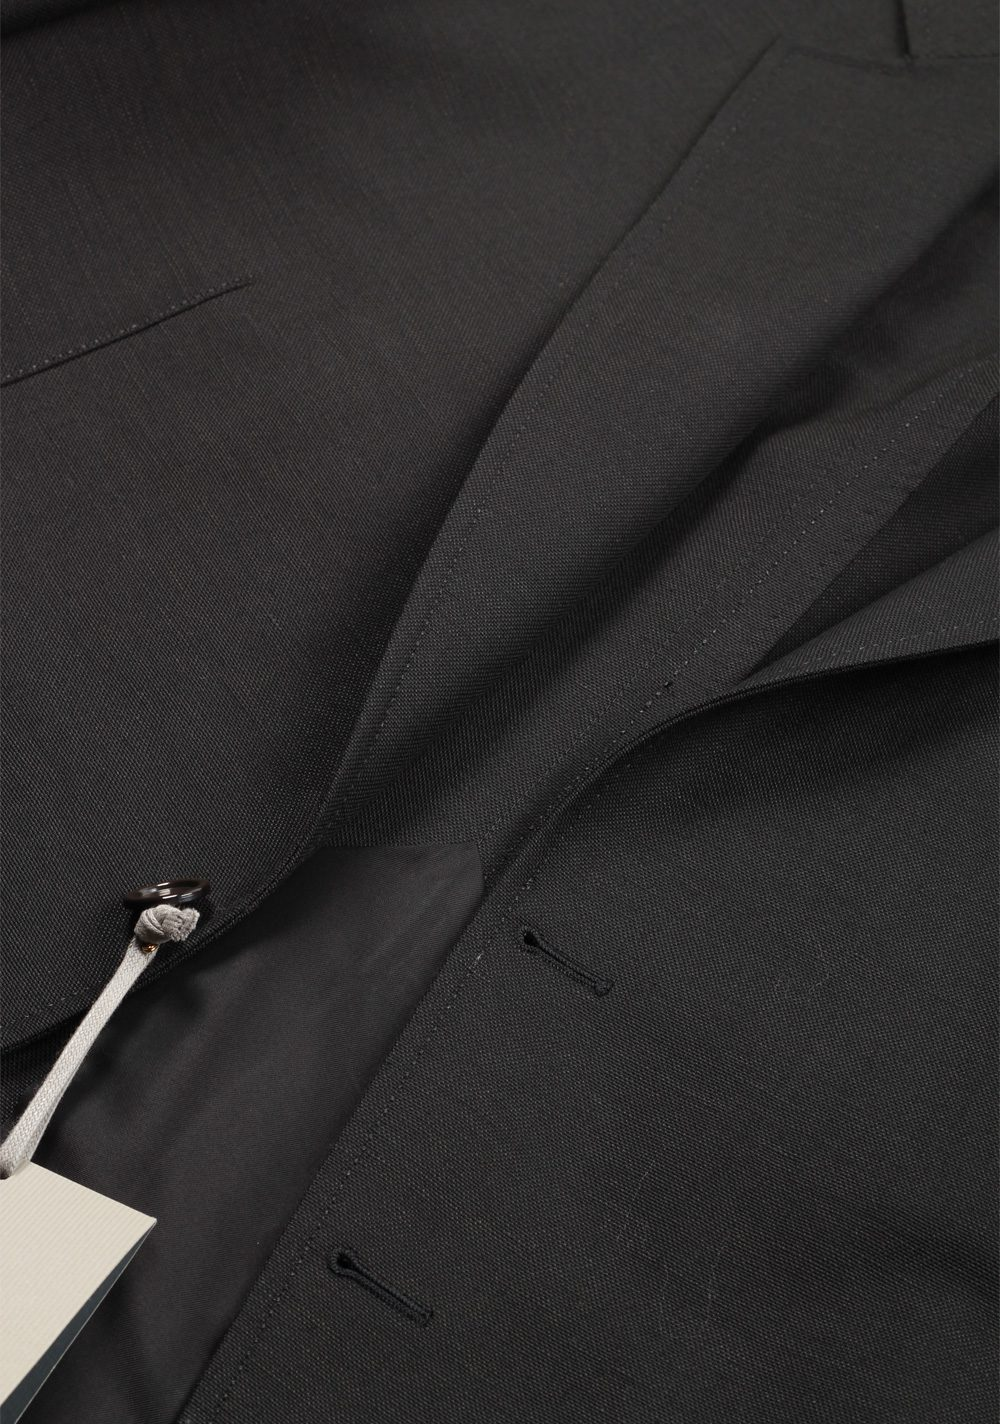 TOM FORD O'Connor Black Sport Coat Size 54 / 44R U.S. | Costume Limité